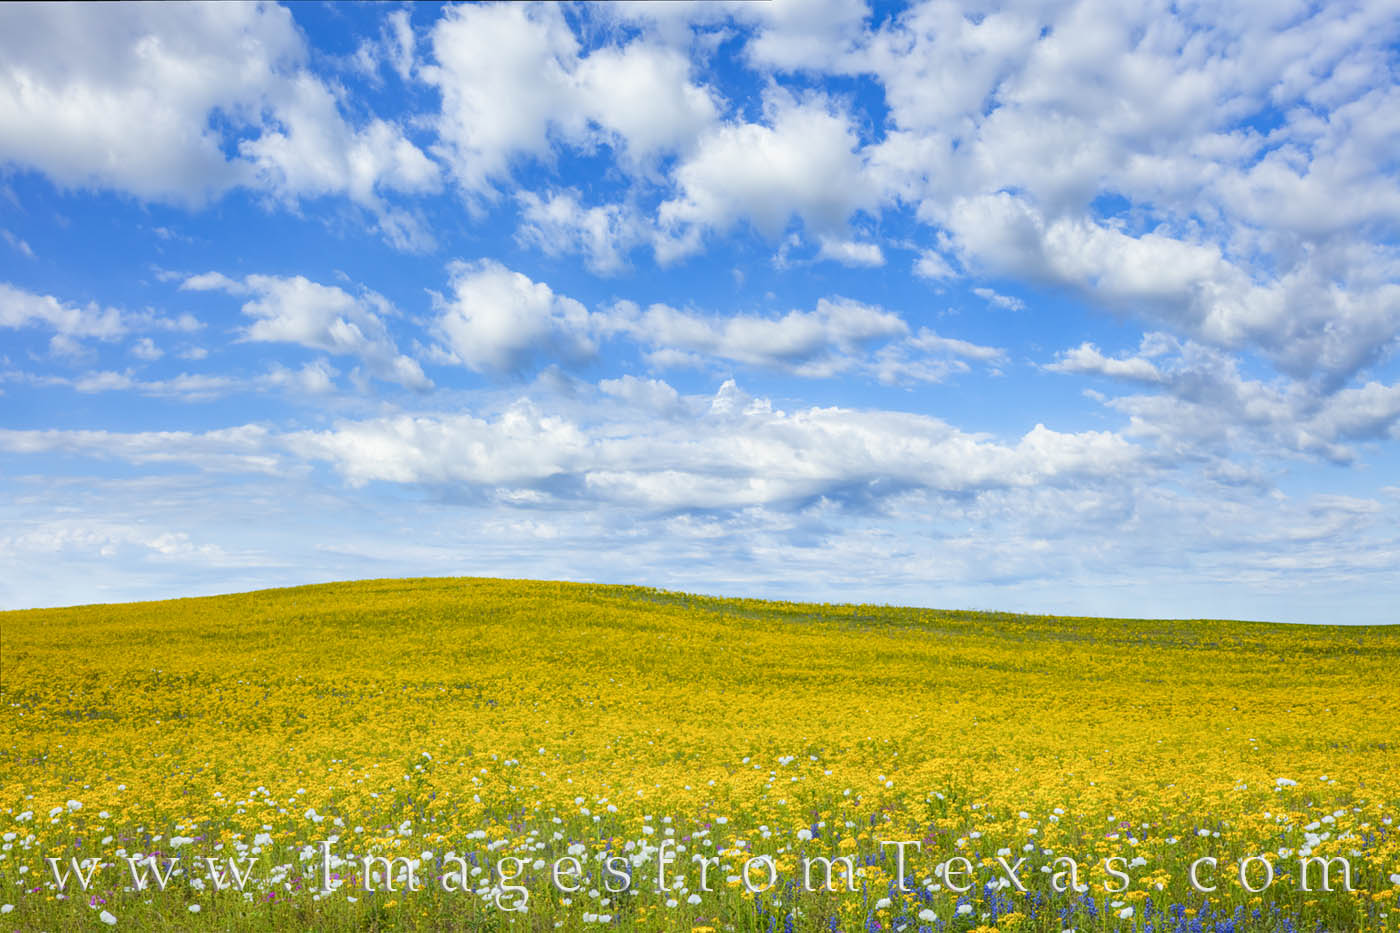 Golden groundsel blooms fill the landscape on a quiet road south of San Antonio near Poteet, Texas.